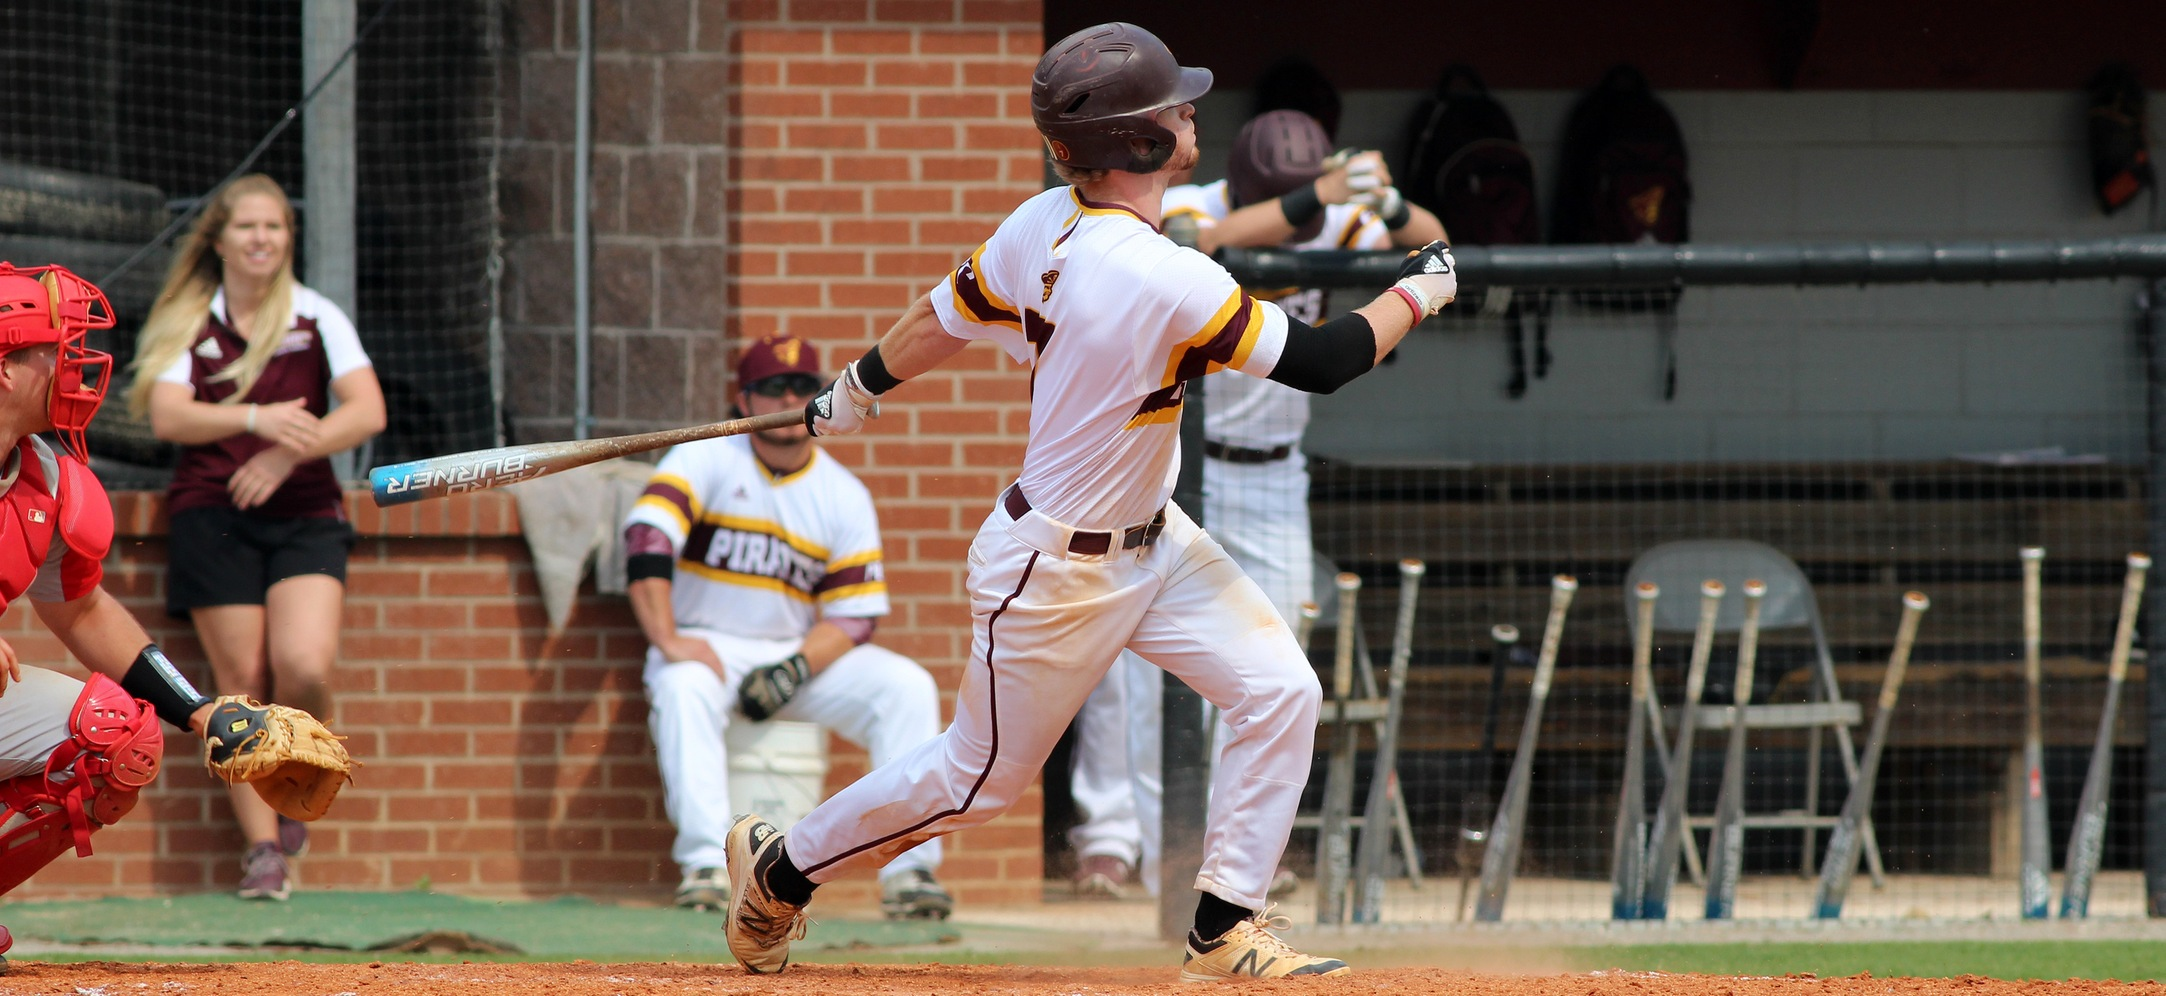 No. 7 North Georgia Sweeps Pirate Baseball On Saturday